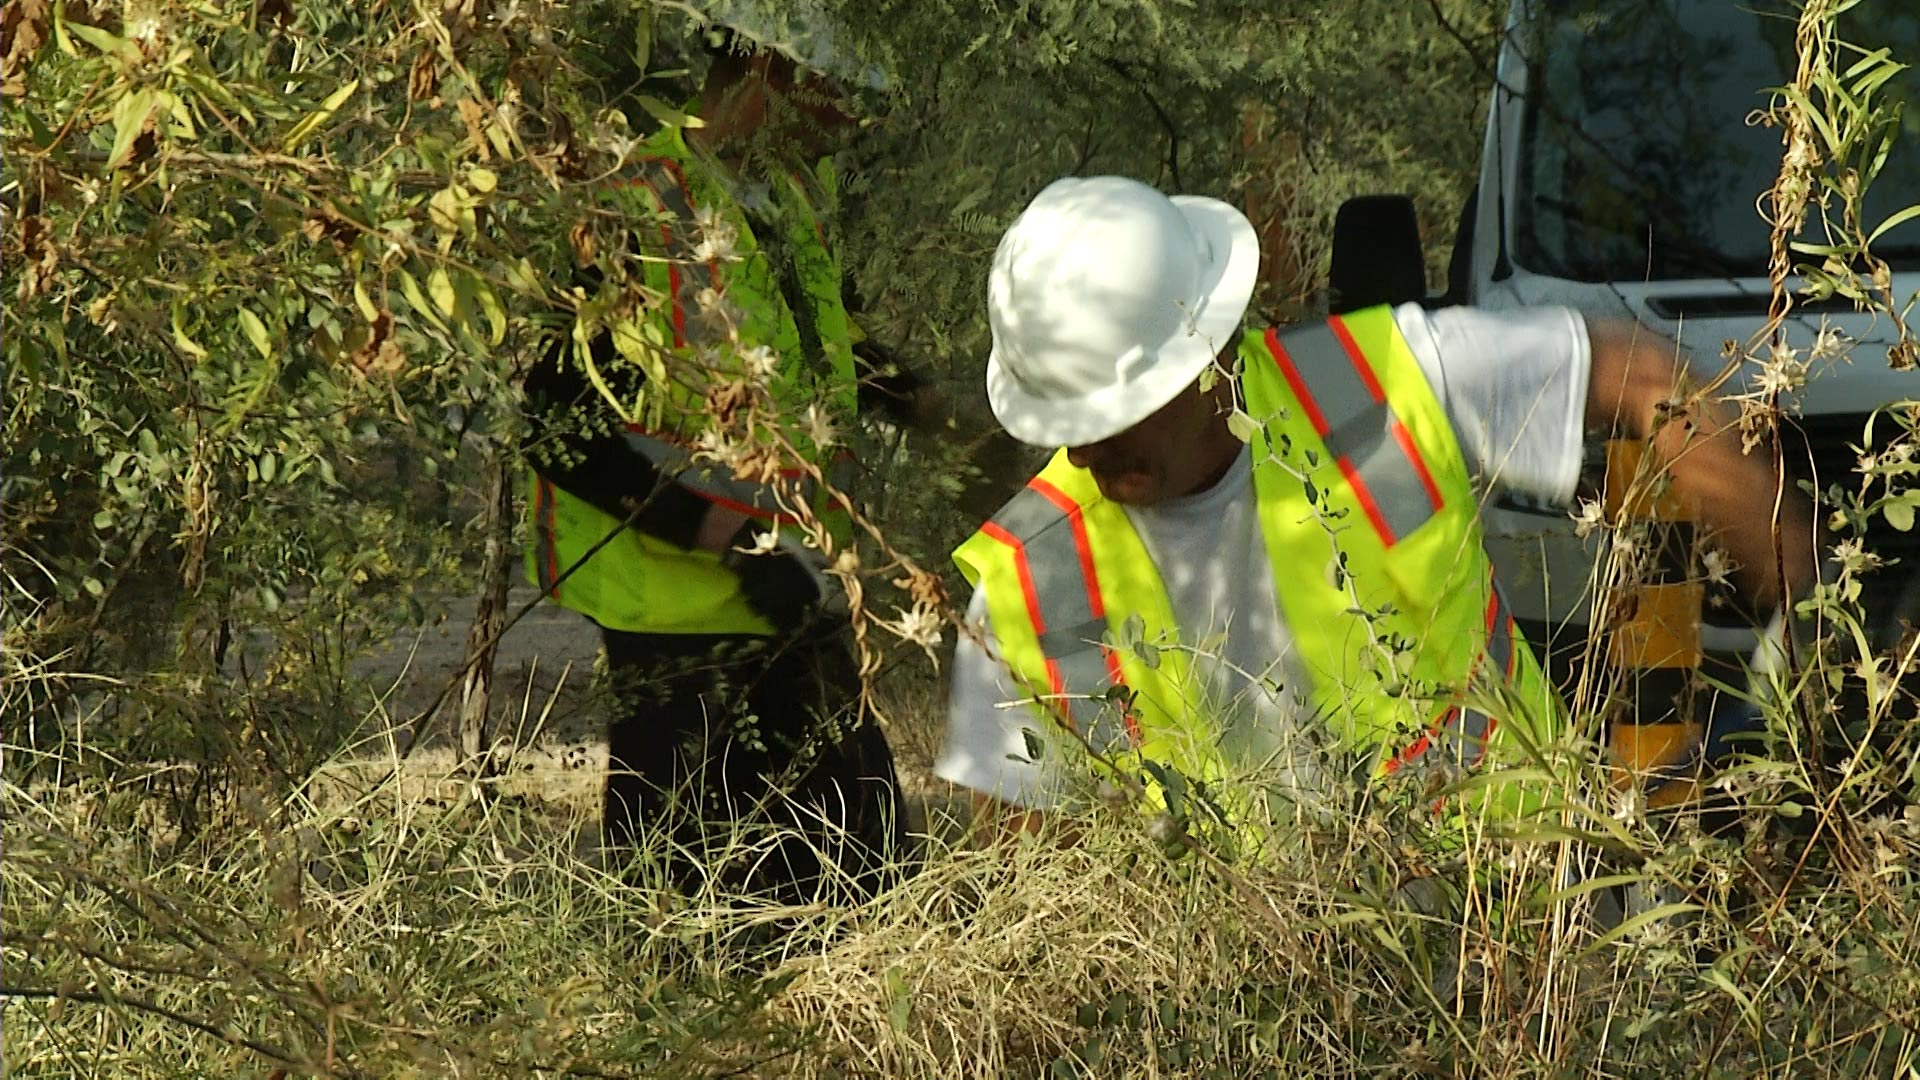 Two men clean up plant debris from a neighborhood as part of the Tucson Homeless Work Program. The program offers homeless individuals daily jobs assigned by the City of Tucson and Pima County.